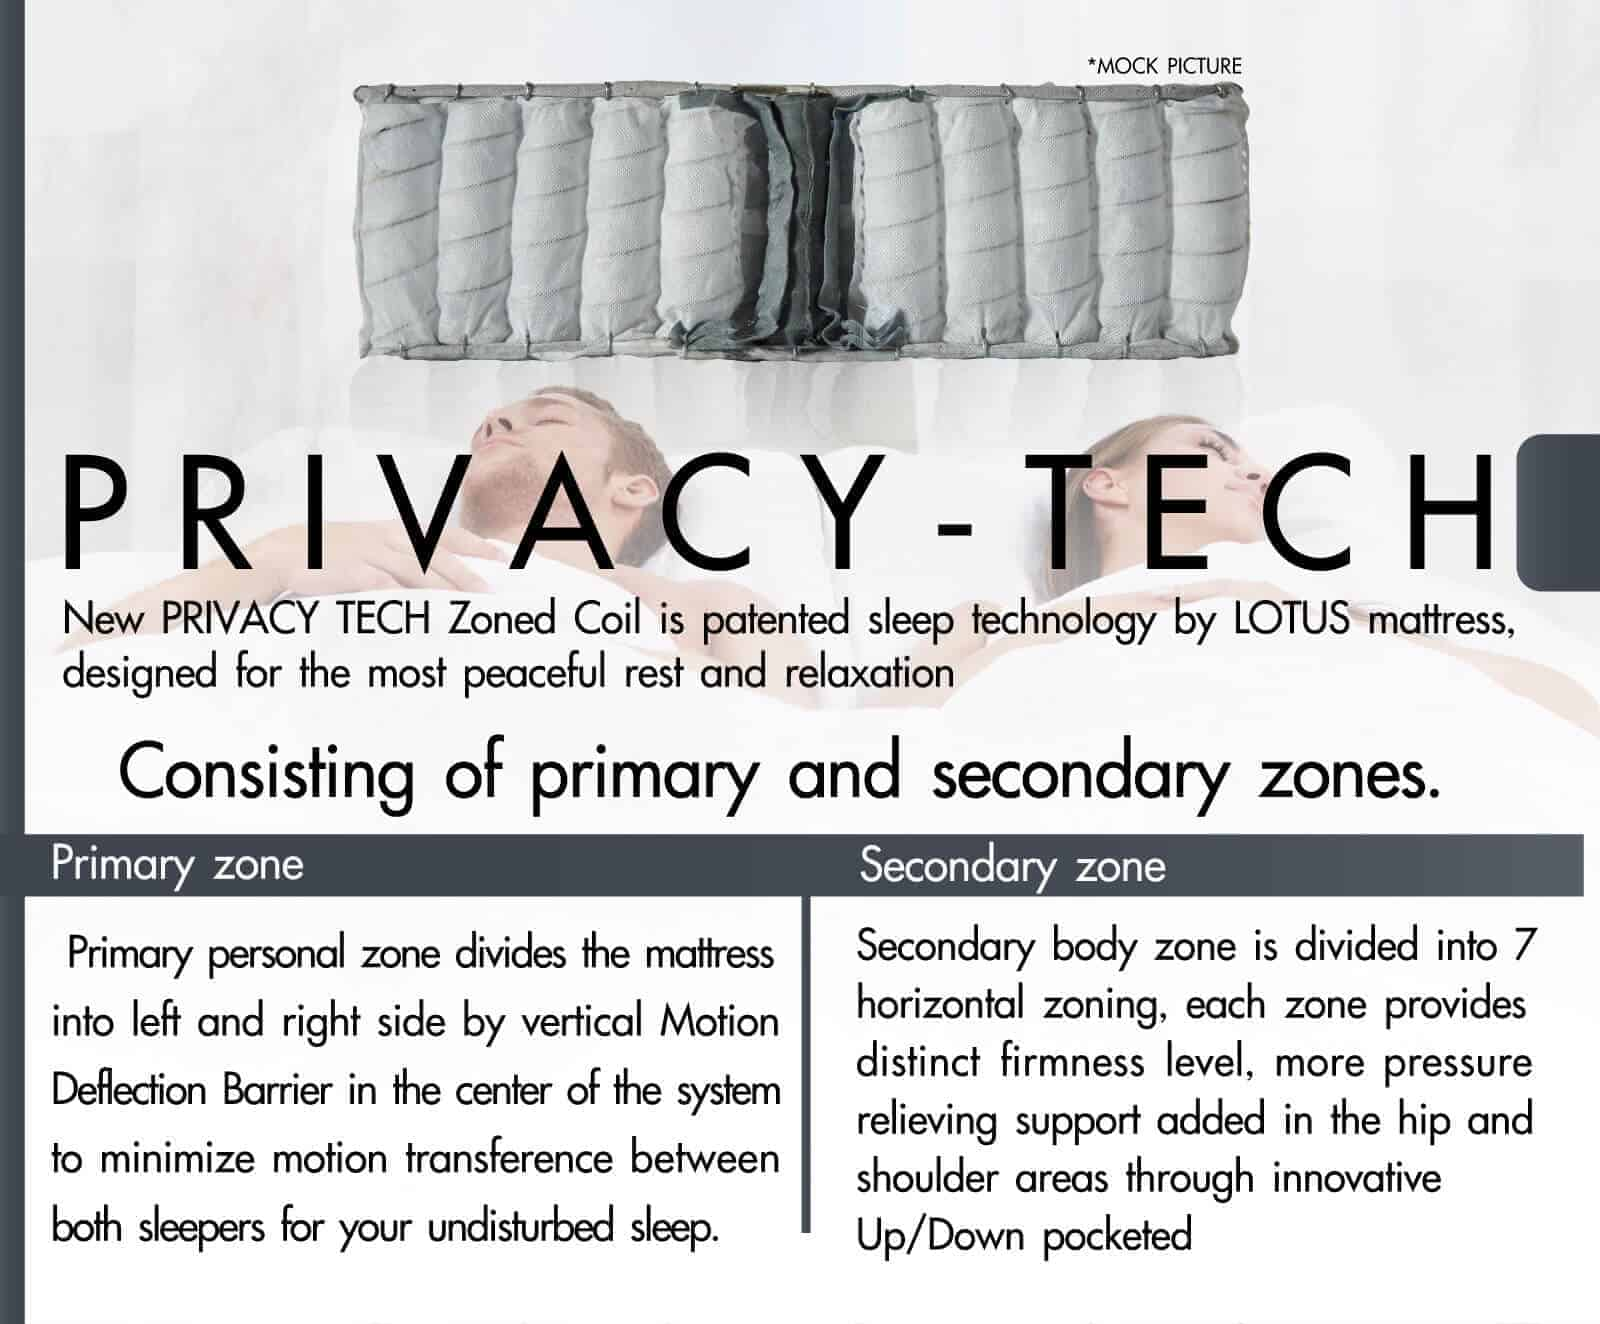 Lotus Mattress | Privacy Tech - SORENTO 11